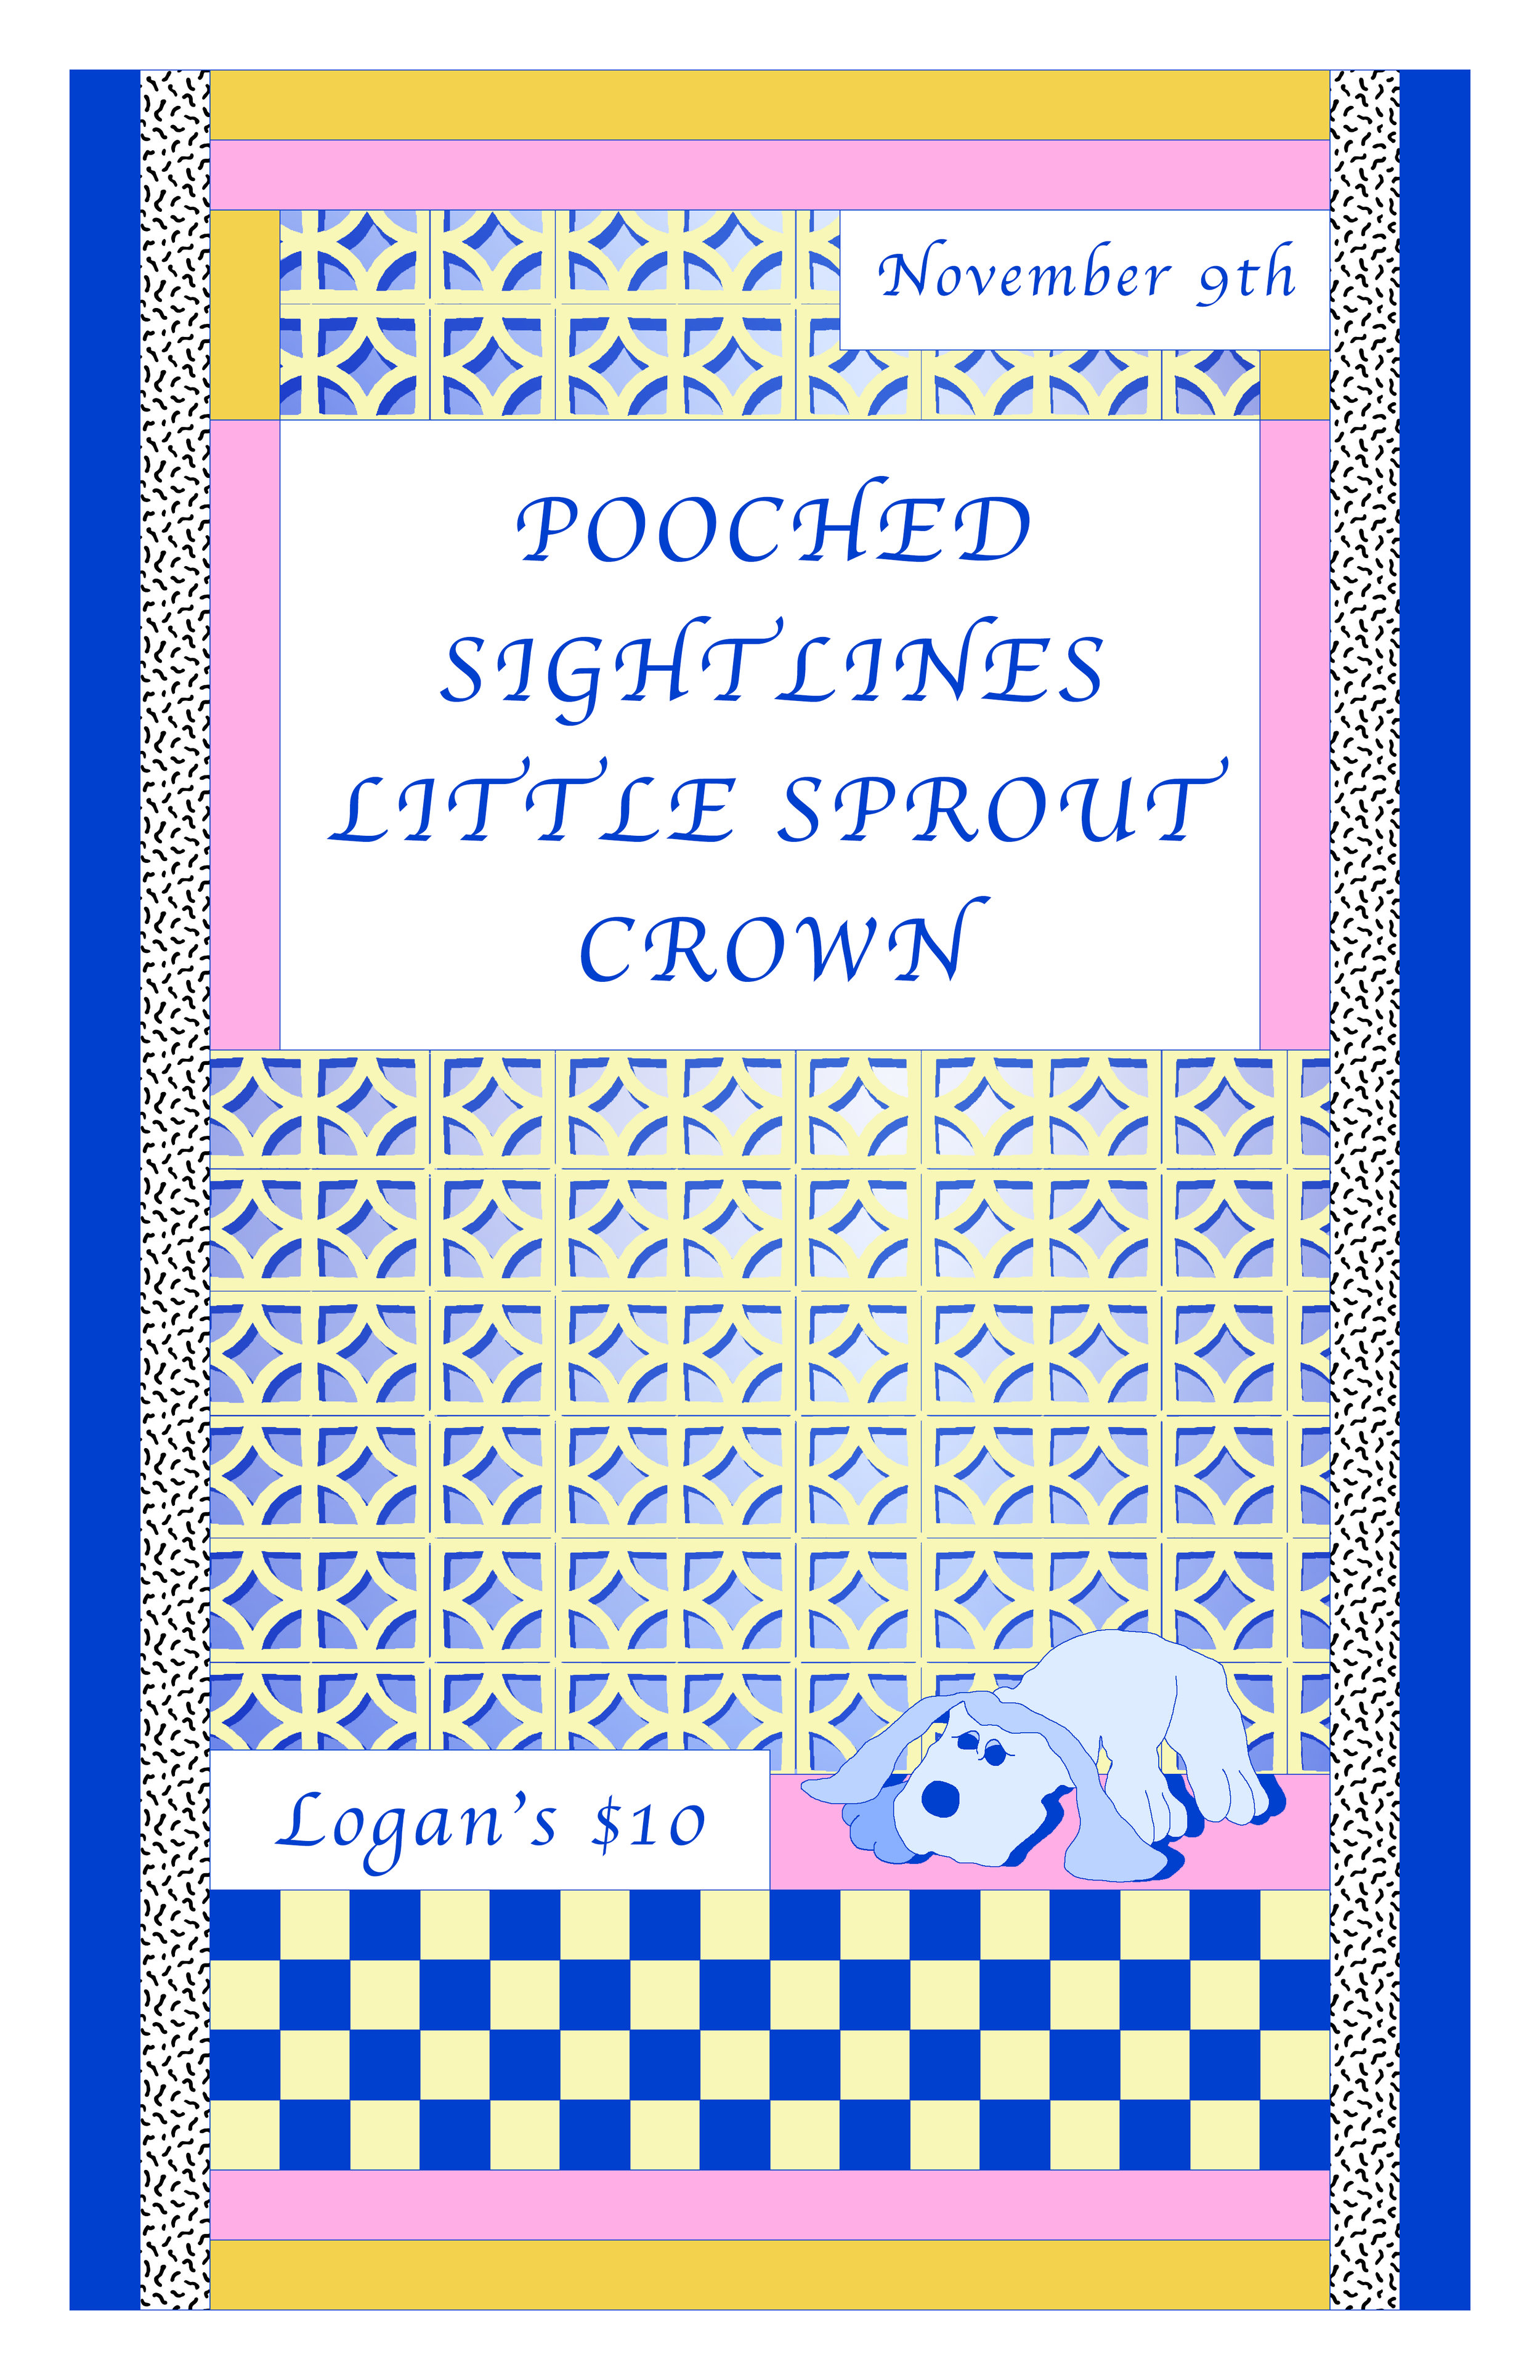 Pooched, Sightlines, Little Sprout, Crown at Logan's, Victoria , 11 x 17 poster, (2019)